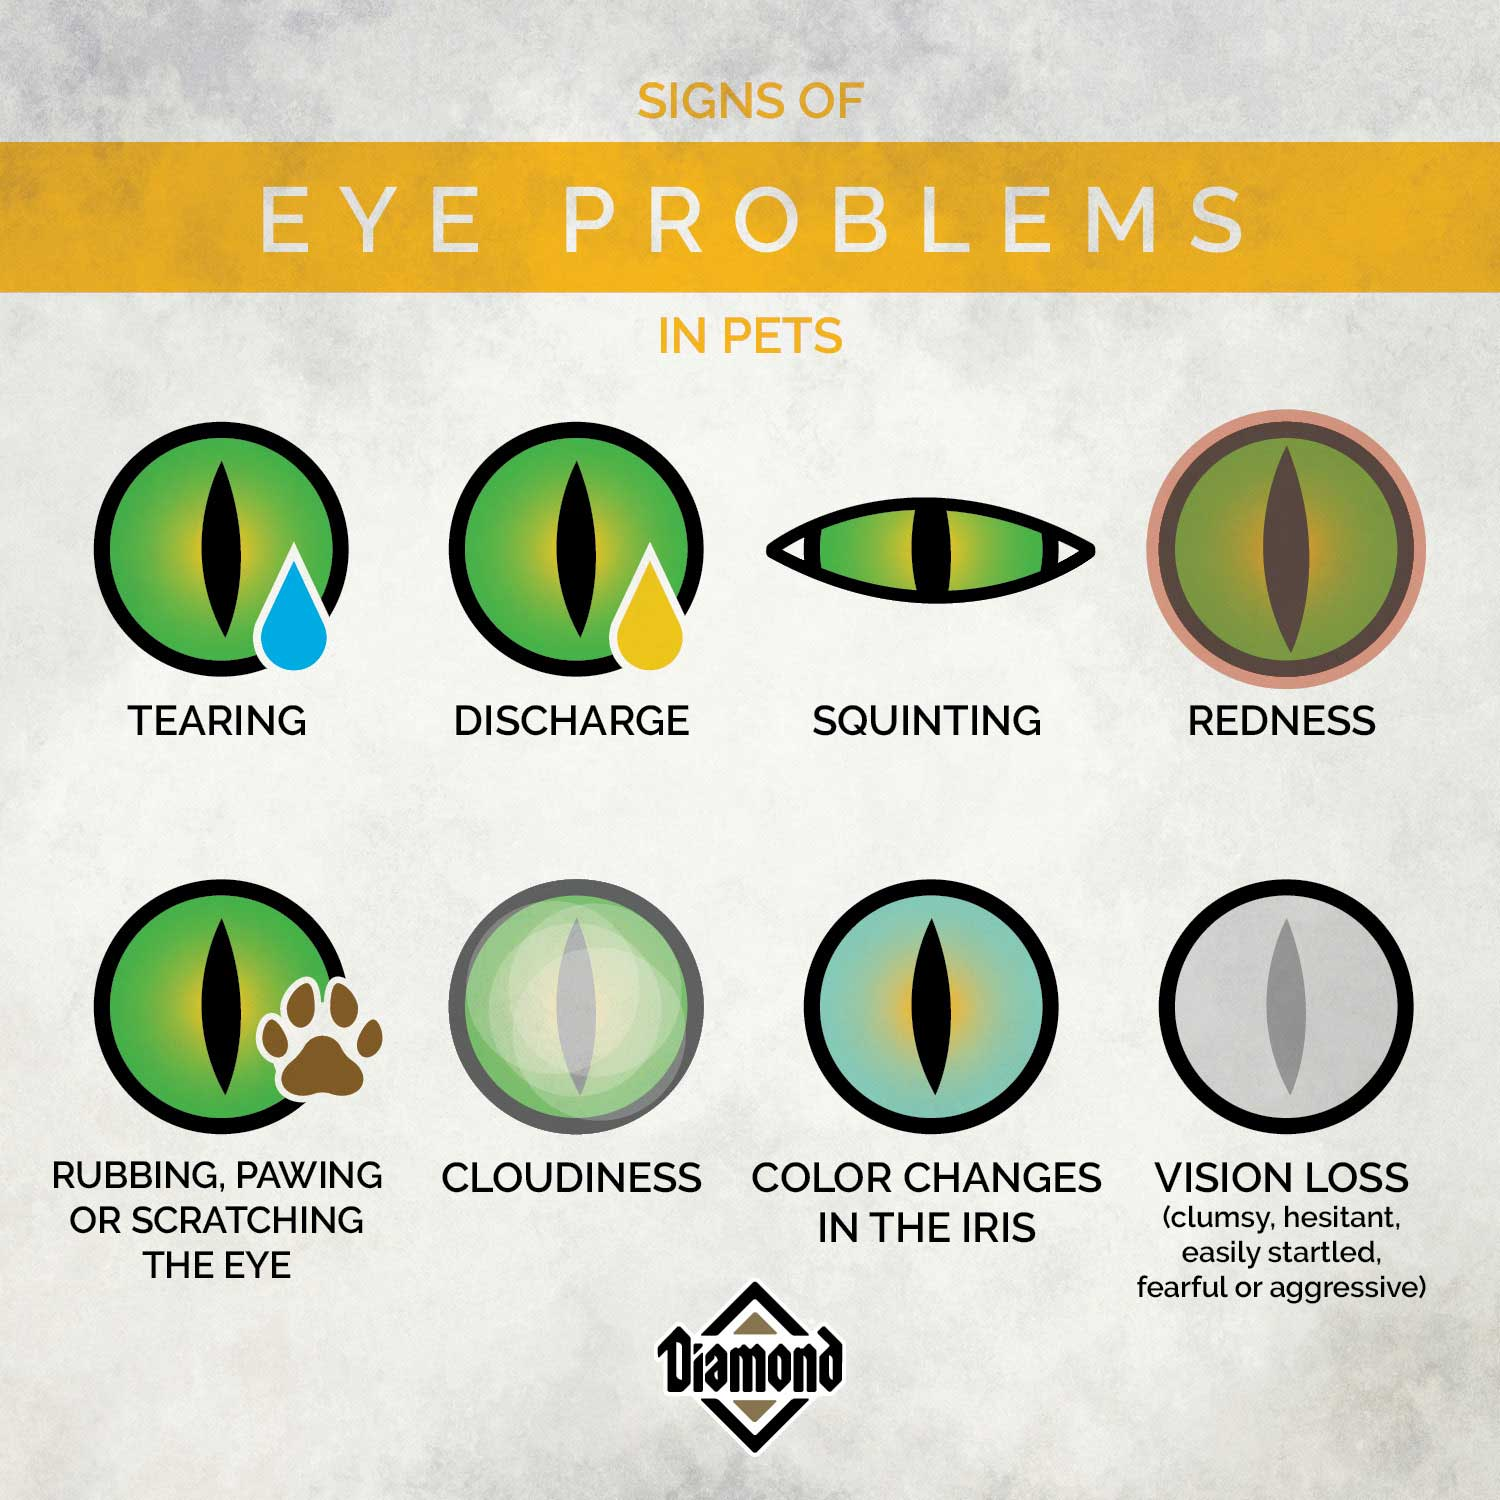 Signs of Eye Problems in Pets   Diamond Pet Foods